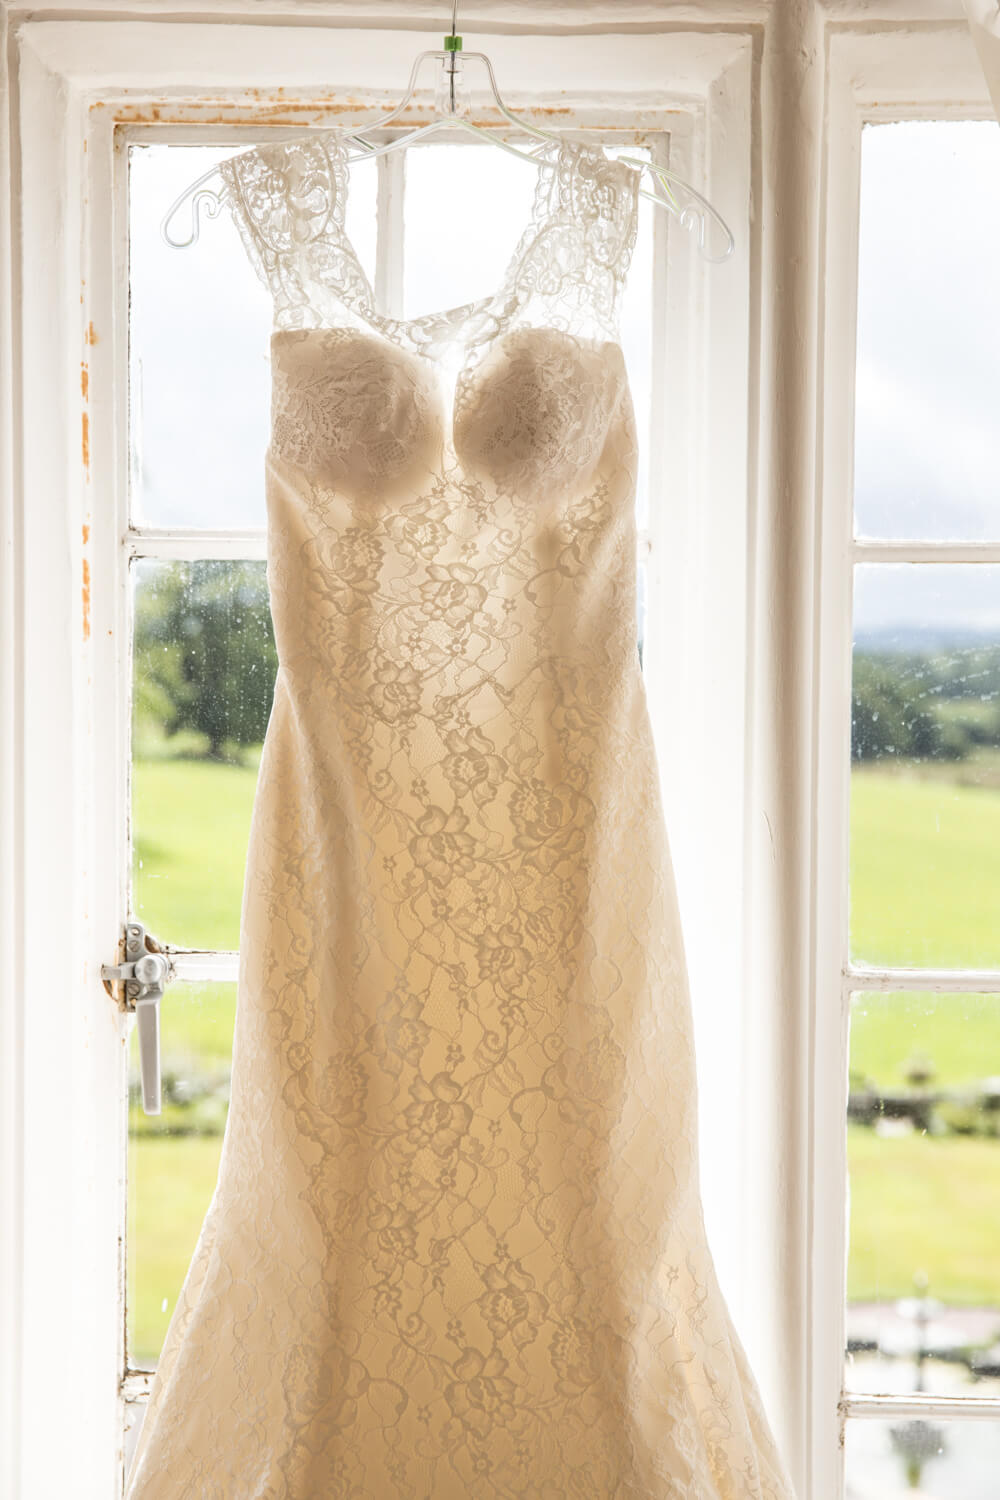 bride dress hung up in window